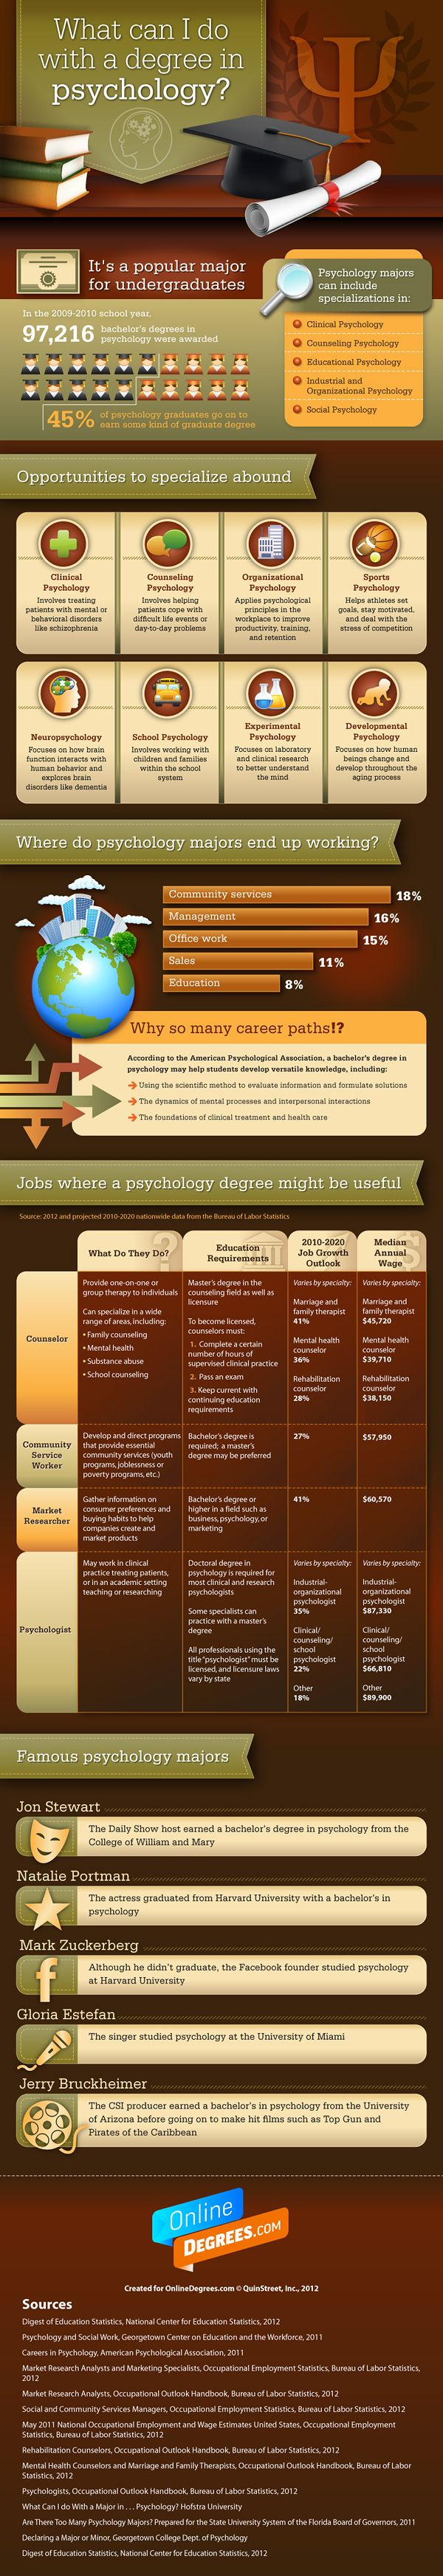 46 best Majors images on Pinterest | College majors, Career ...